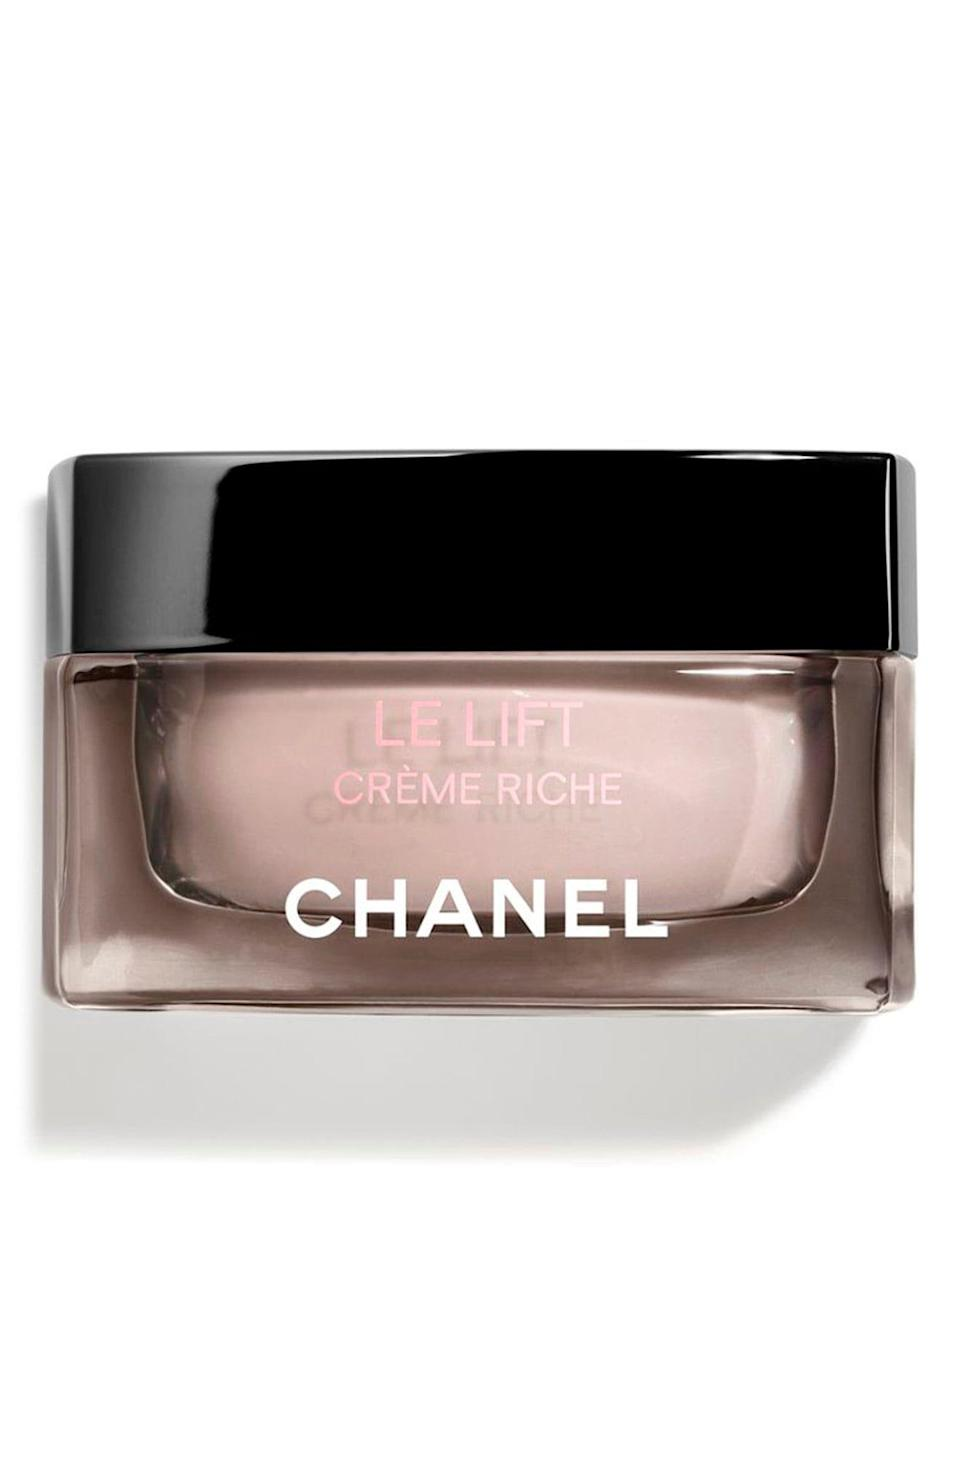 """<p><strong>CHANEL</strong></p><p>nordstrom.com</p><p><strong>$165.00</strong></p><p><a href=""""https://go.redirectingat.com?id=74968X1596630&url=https%3A%2F%2Fshop.nordstrom.com%2Fs%2Fchanel-le-lift-creme-riche%2F5368493&sref=https%3A%2F%2Fwww.marieclaire.com%2Fbeauty%2Fg34015100%2Fanti-aging-moisturizers%2F"""" rel=""""nofollow noopener"""" target=""""_blank"""" data-ylk=""""slk:SHOP IT"""" class=""""link rapid-noclick-resp"""">SHOP IT</a></p><p>Do you want to one day see your cheekbones and jawline again? This cream firms the face so you can look contoured and lifted again.</p>"""